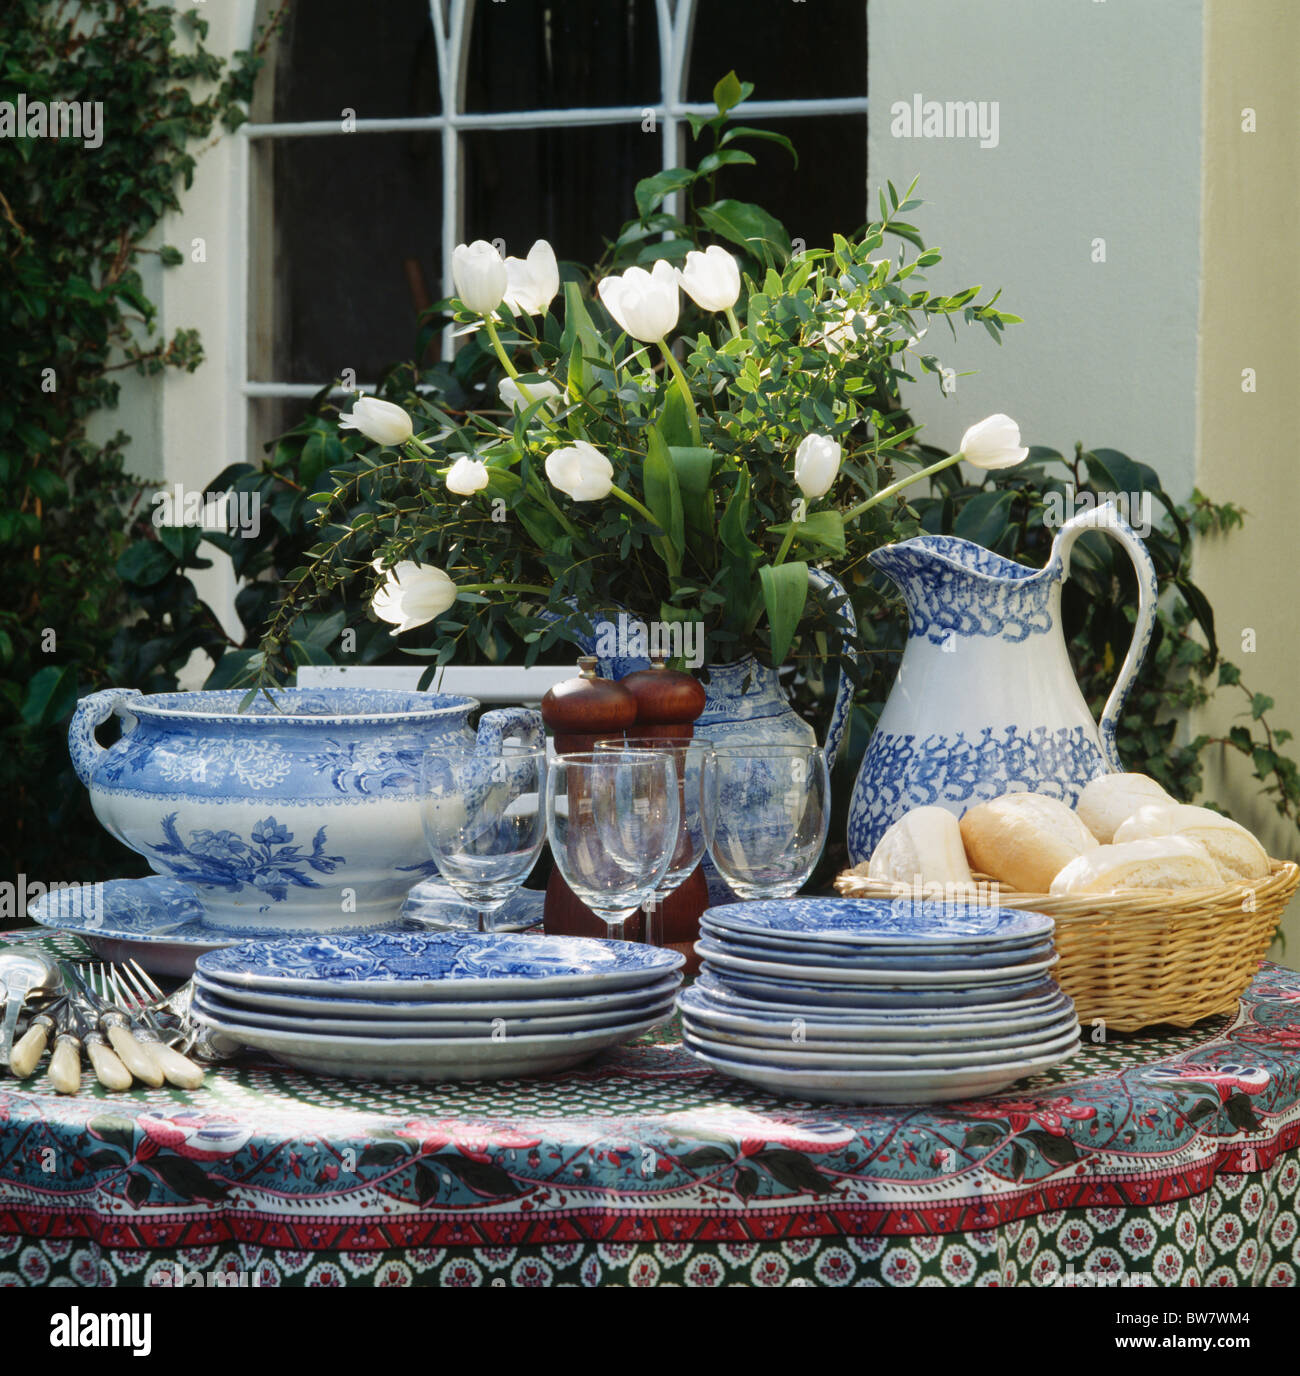 Close up of bluewhite antique china and vase of white tulips on close up of bluewhite antique china and vase of white tulips on garden table in front of window reviewsmspy